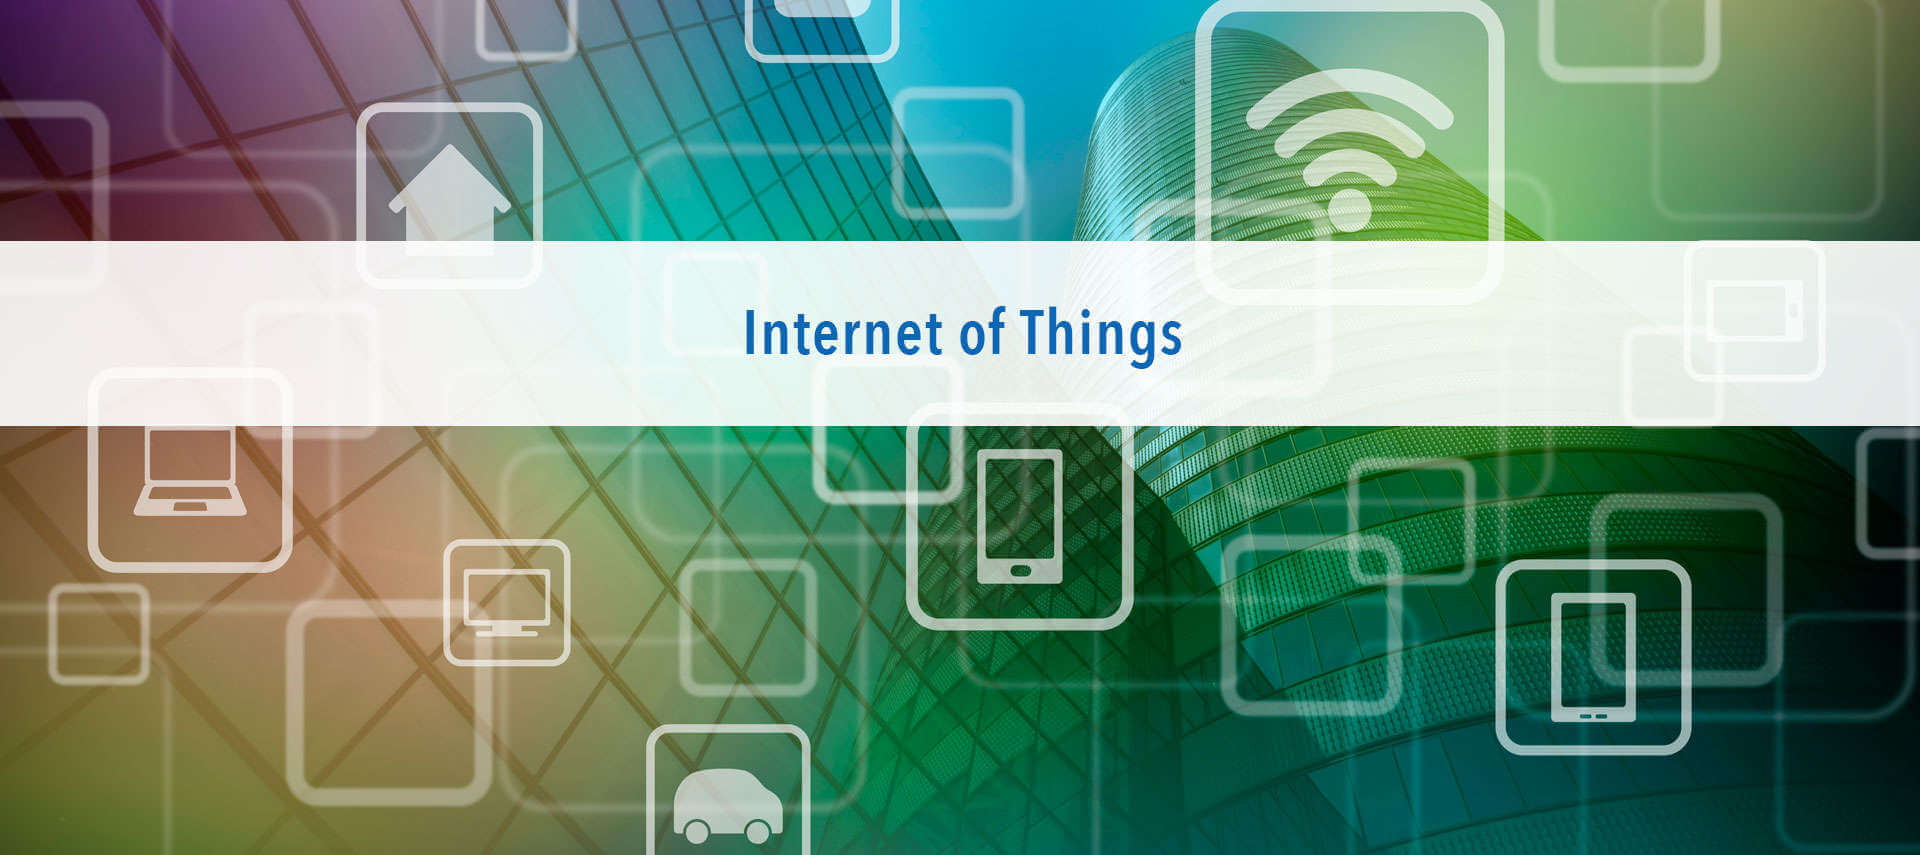 Billing & payments for Internet of Things